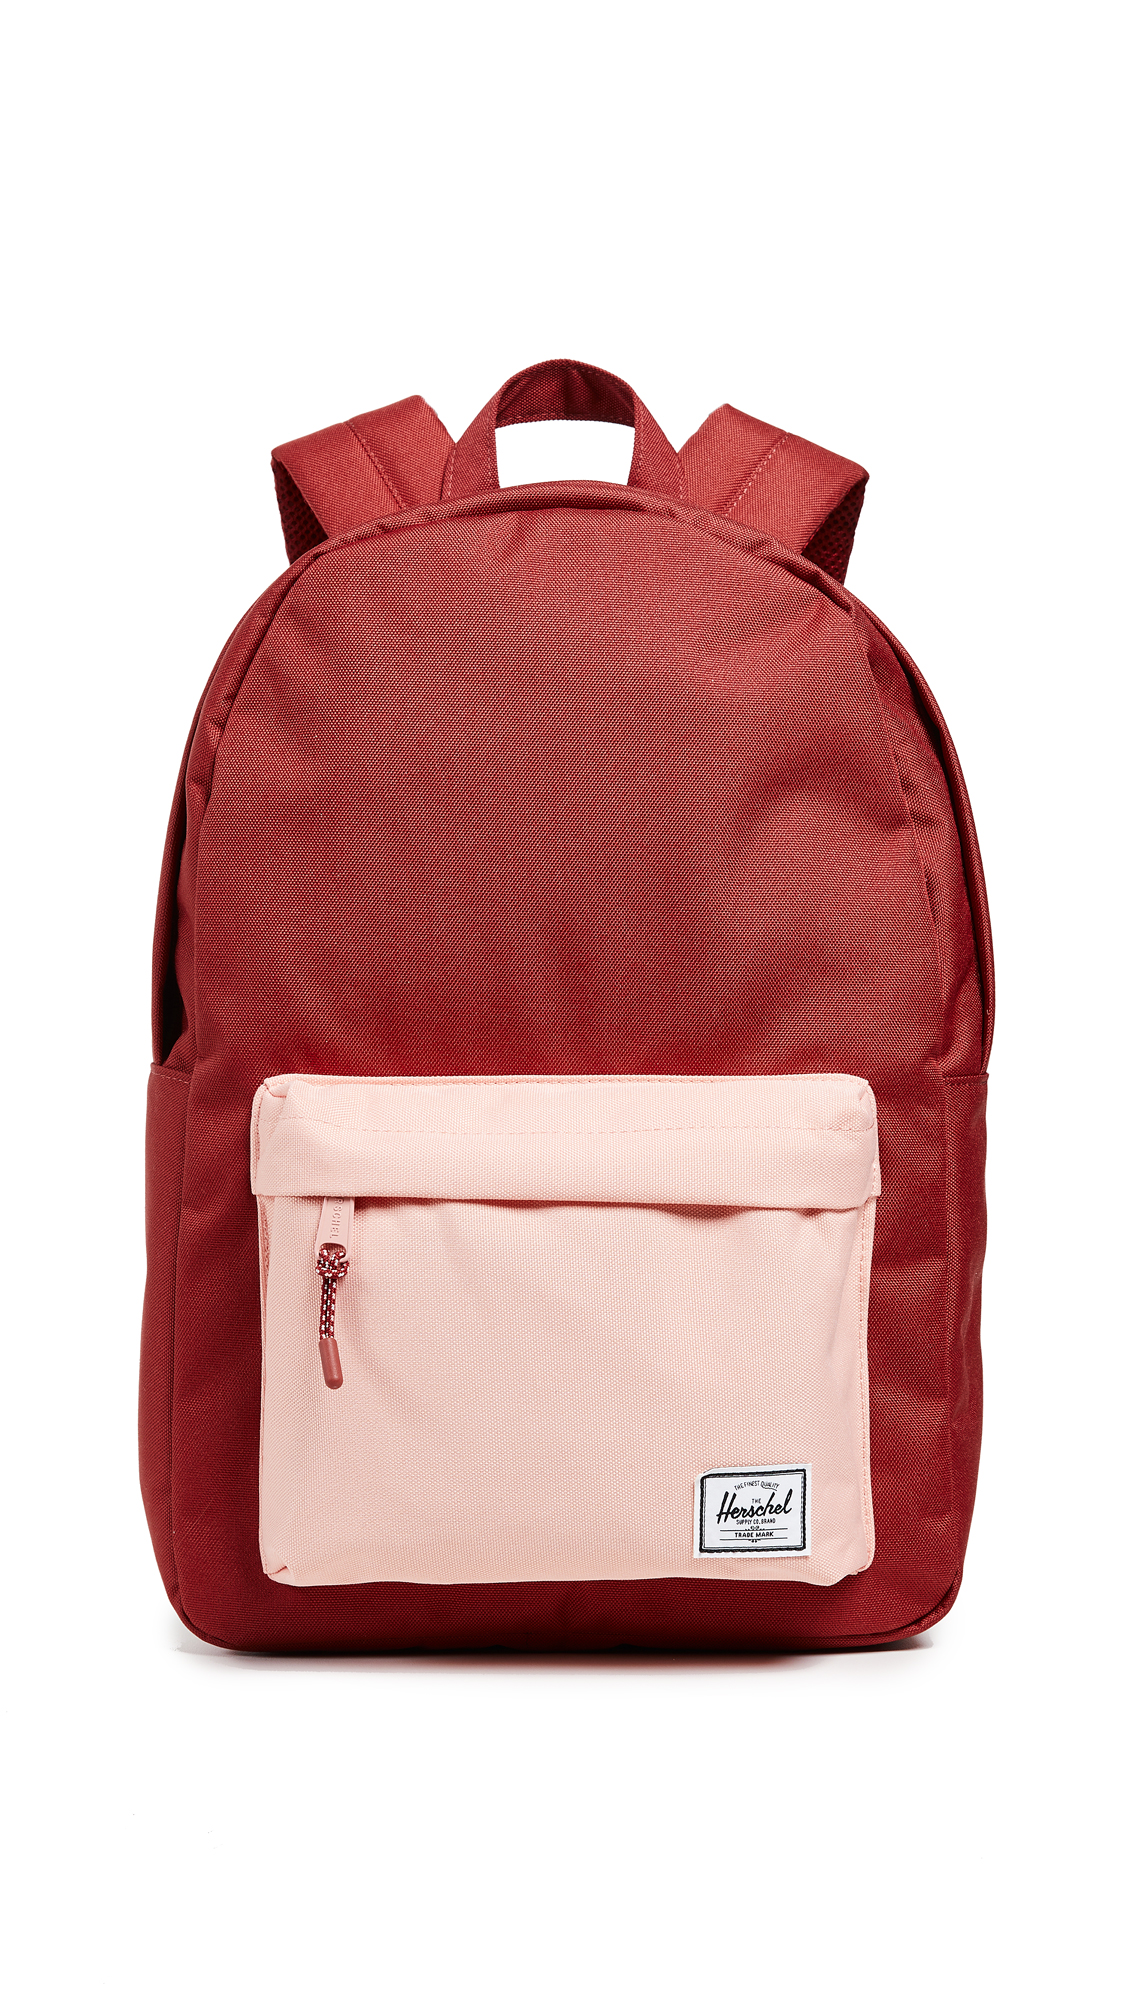 Herschel Supply Co.  Settlement Mid Volume  Backpack - Red In Brick Red  4296d5416733f